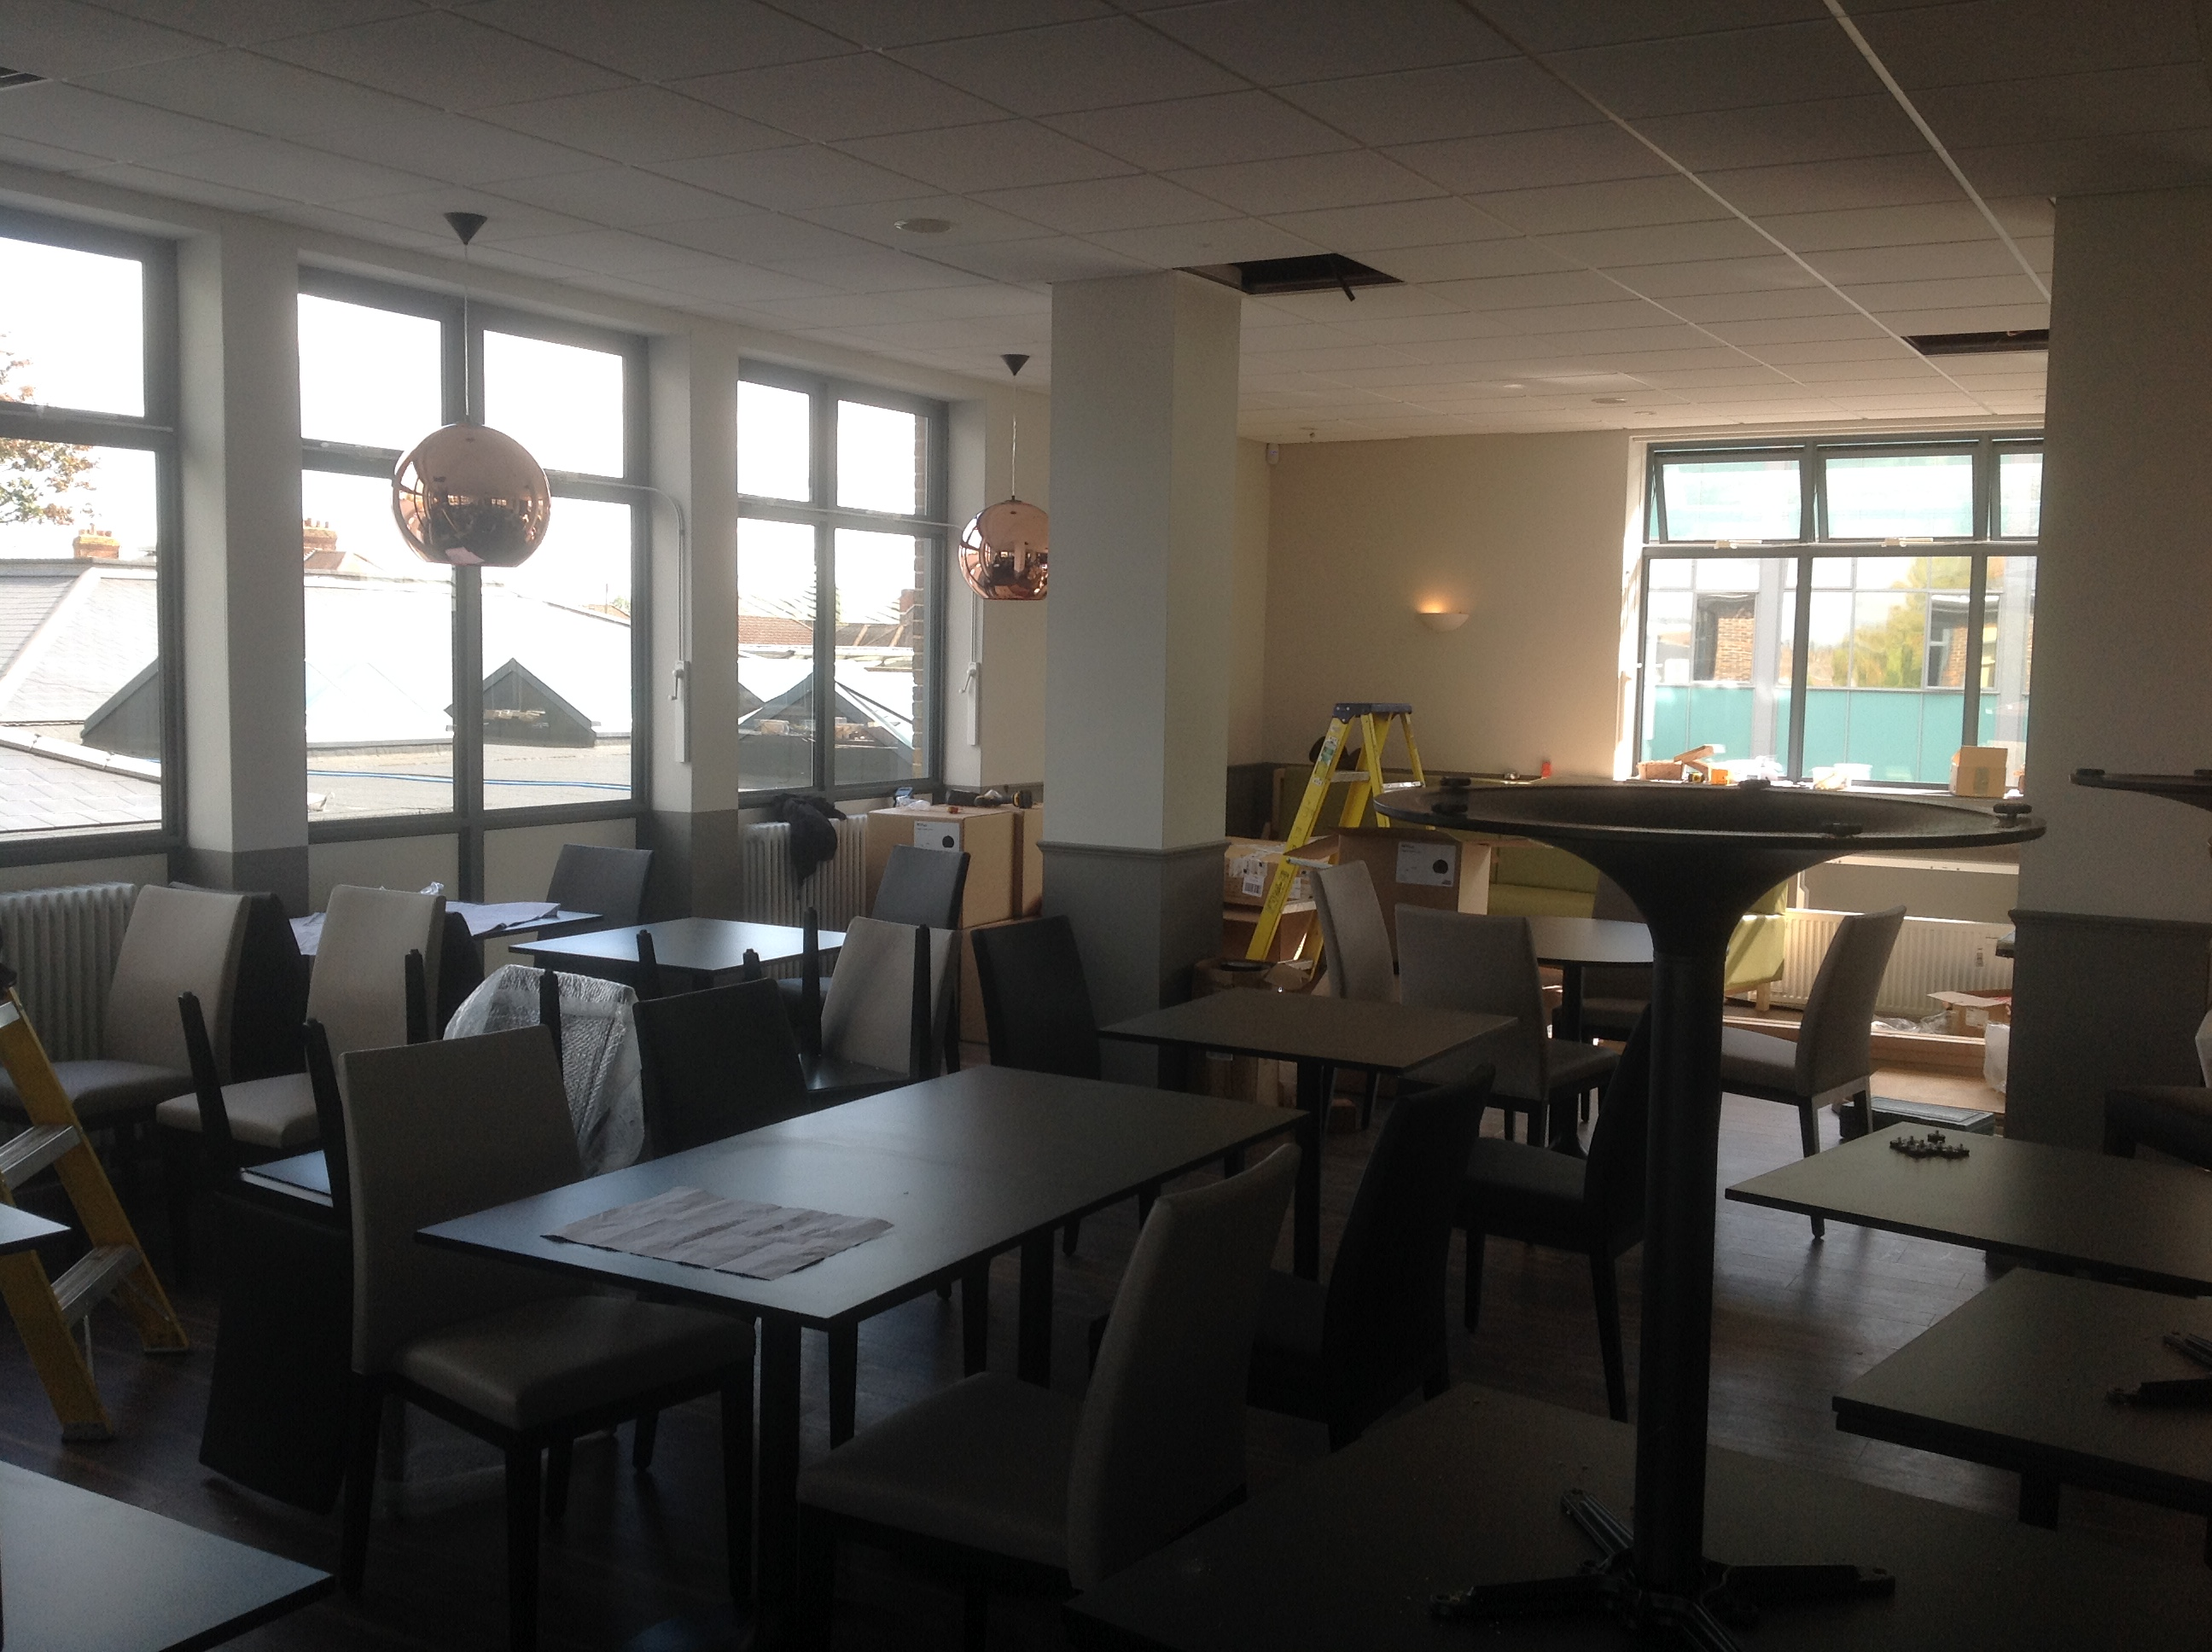 The latest view inside the restaurant - the furniture is coming together